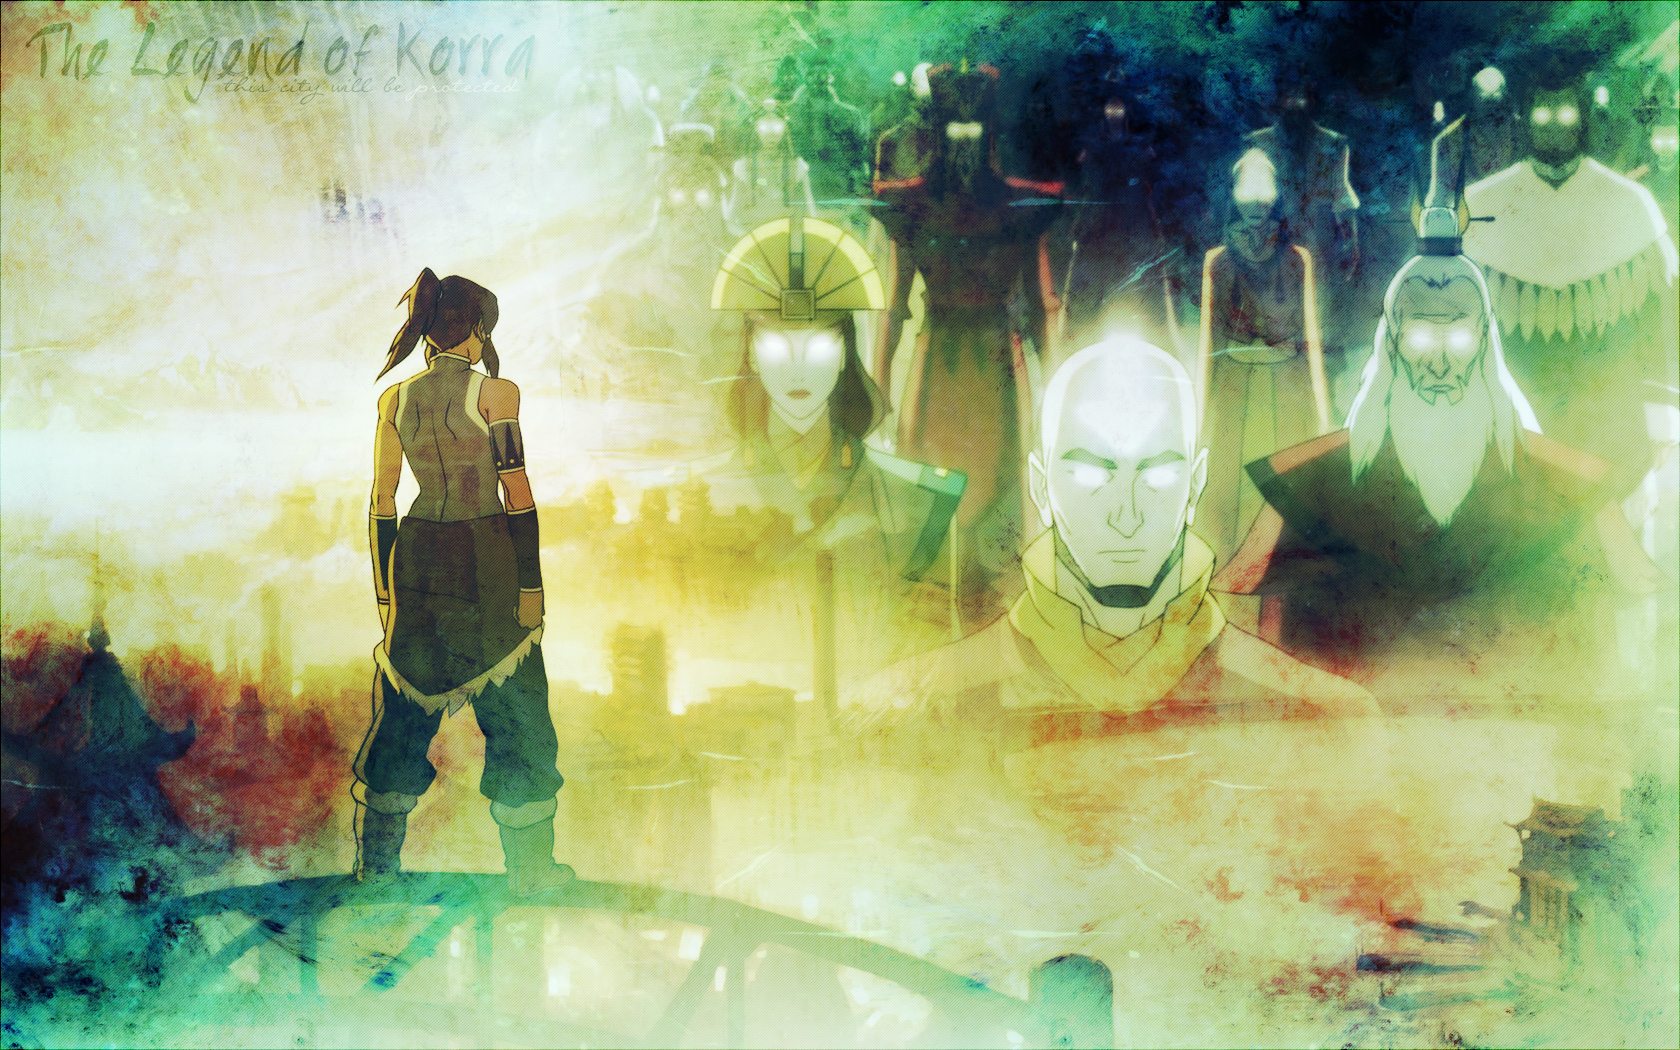 I Made These Wallpapers Avatar The Legend Of Korra Wallpaper